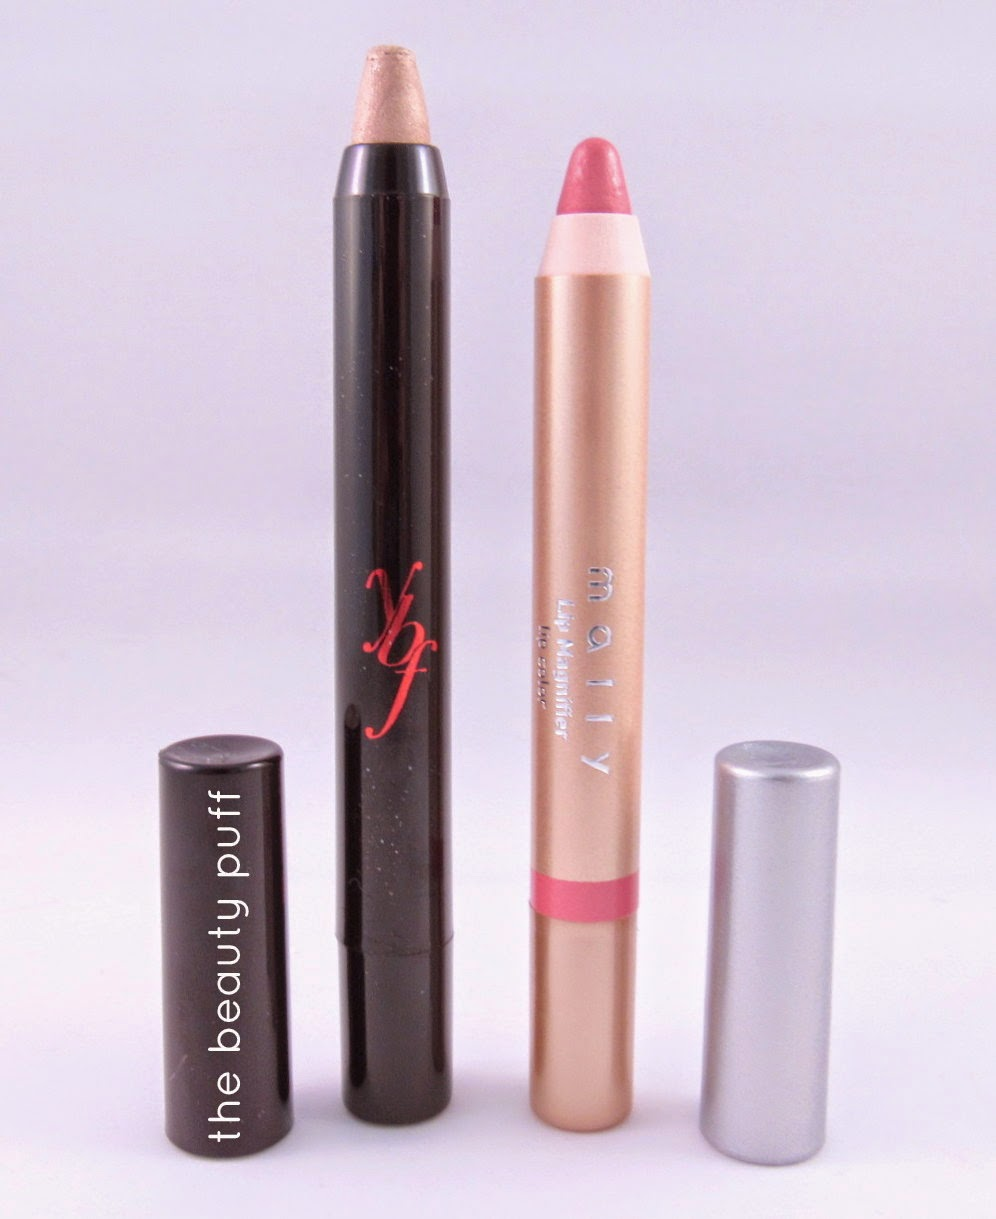 NewBeauty TestTube March 2015 makeup - the beauty puff